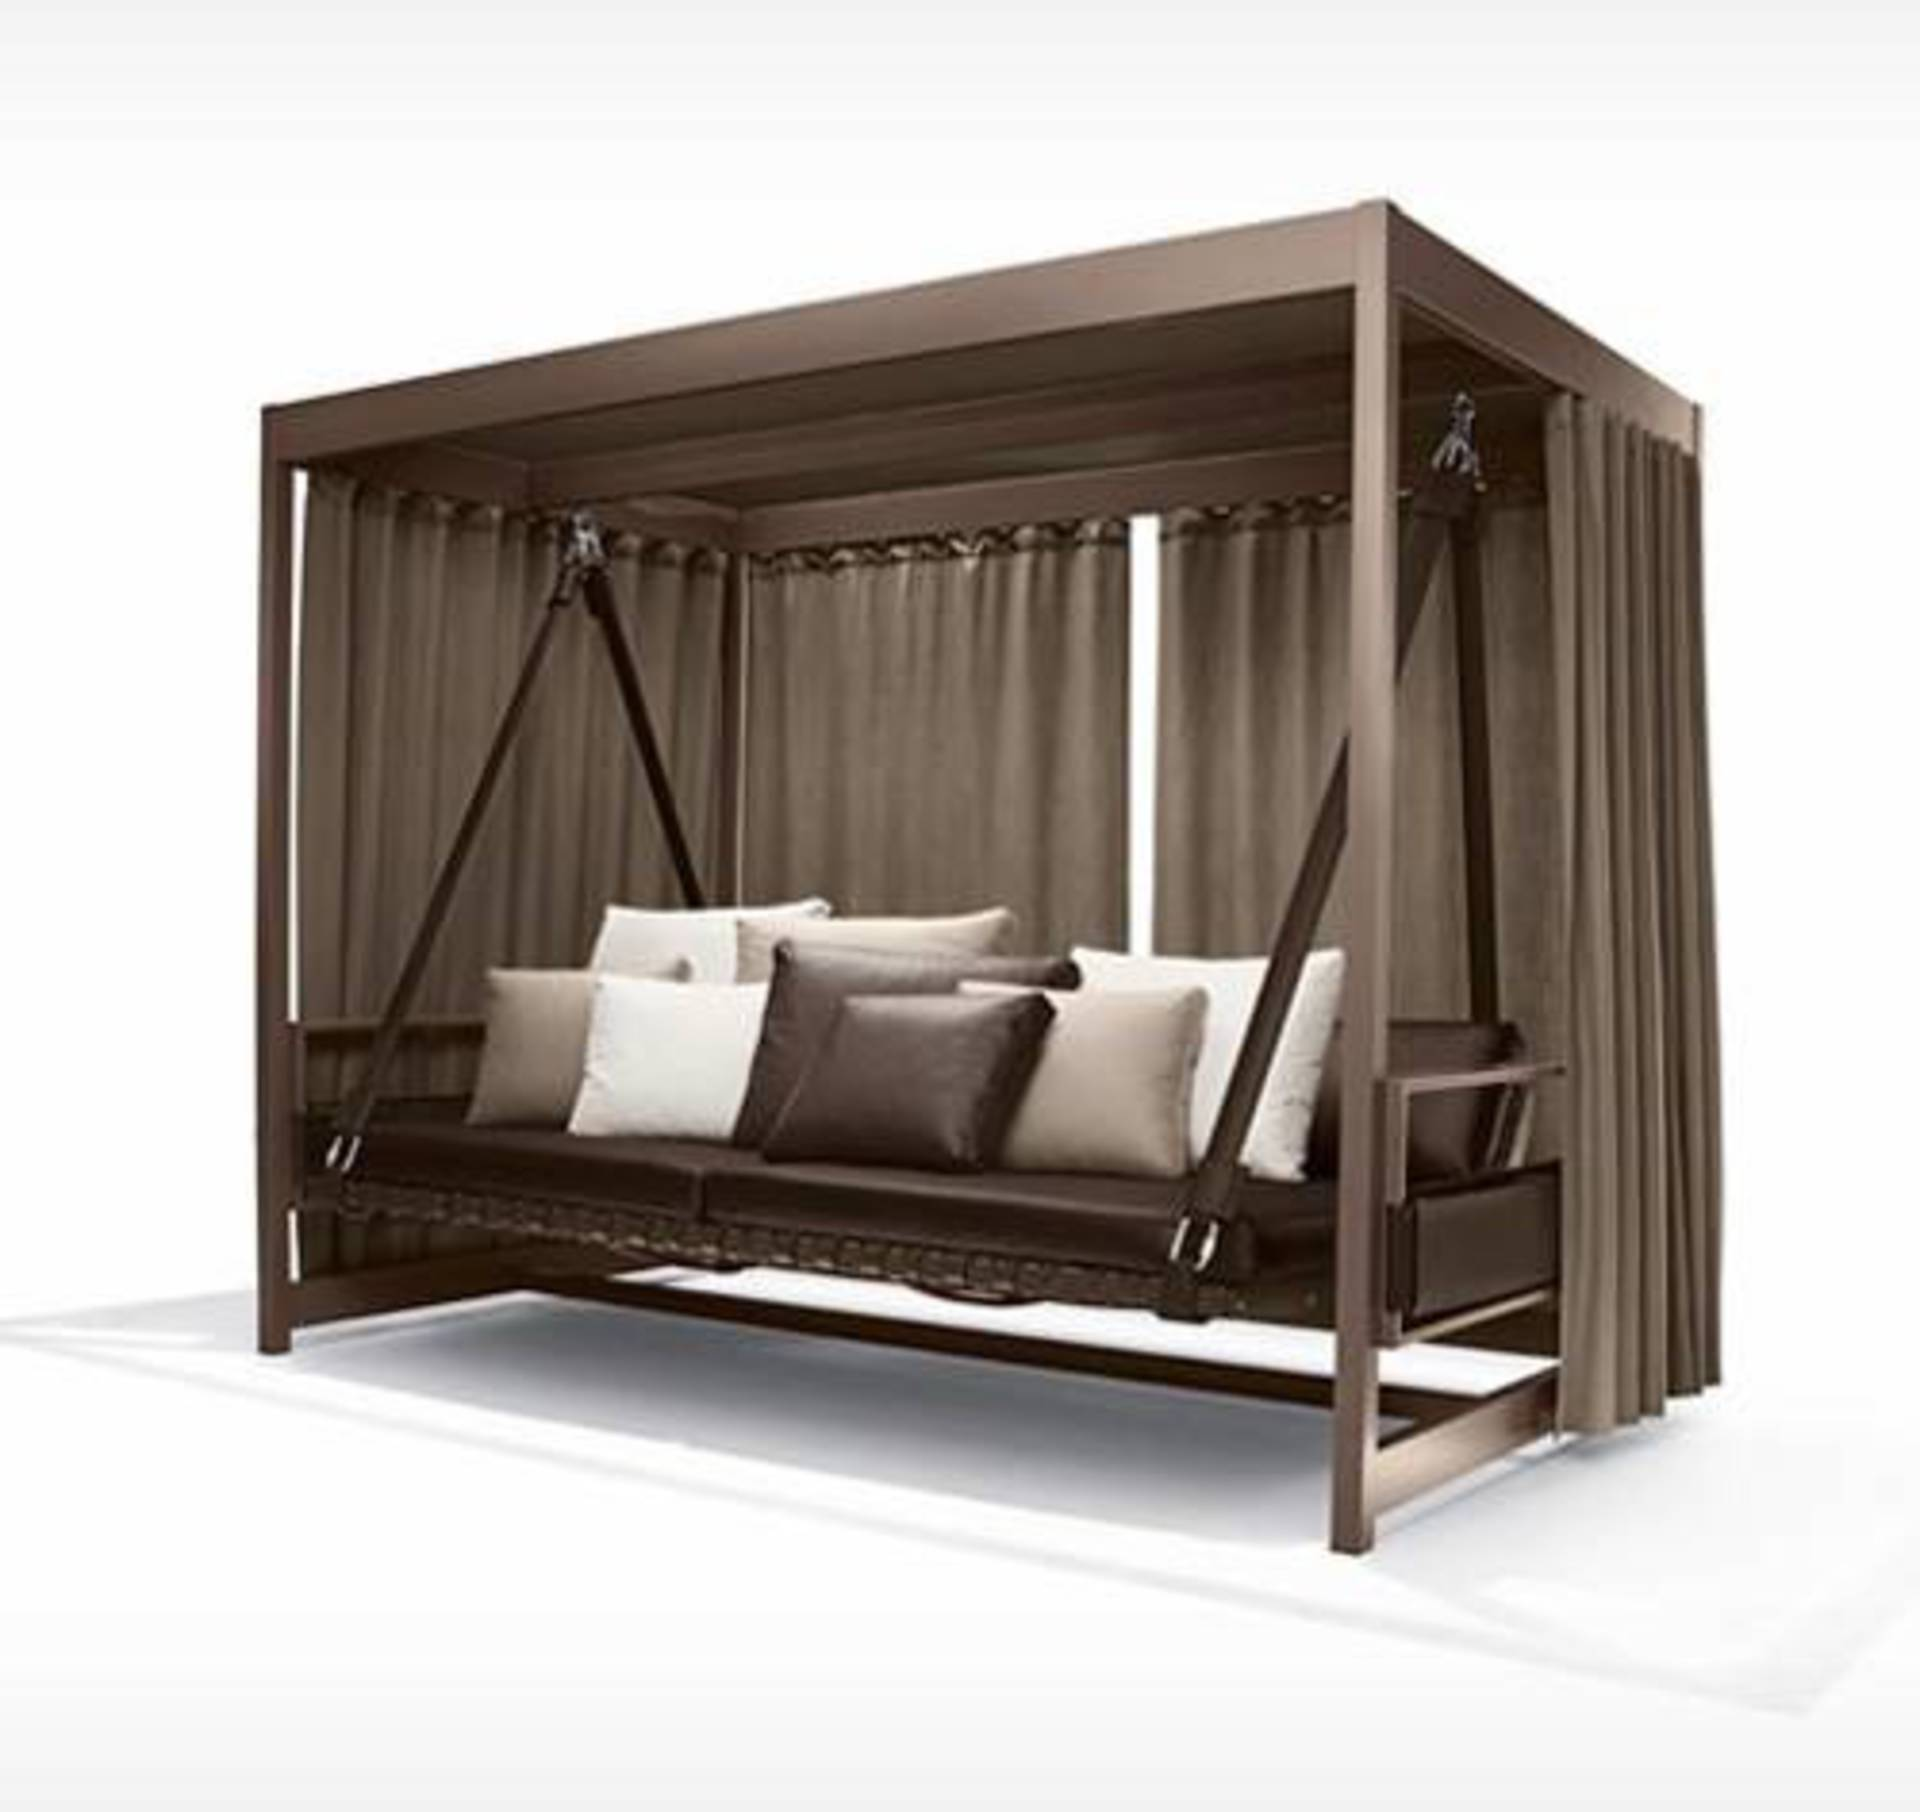 elegant outdoor furniture. beautiful and elegant outdoor furniture by dedon o